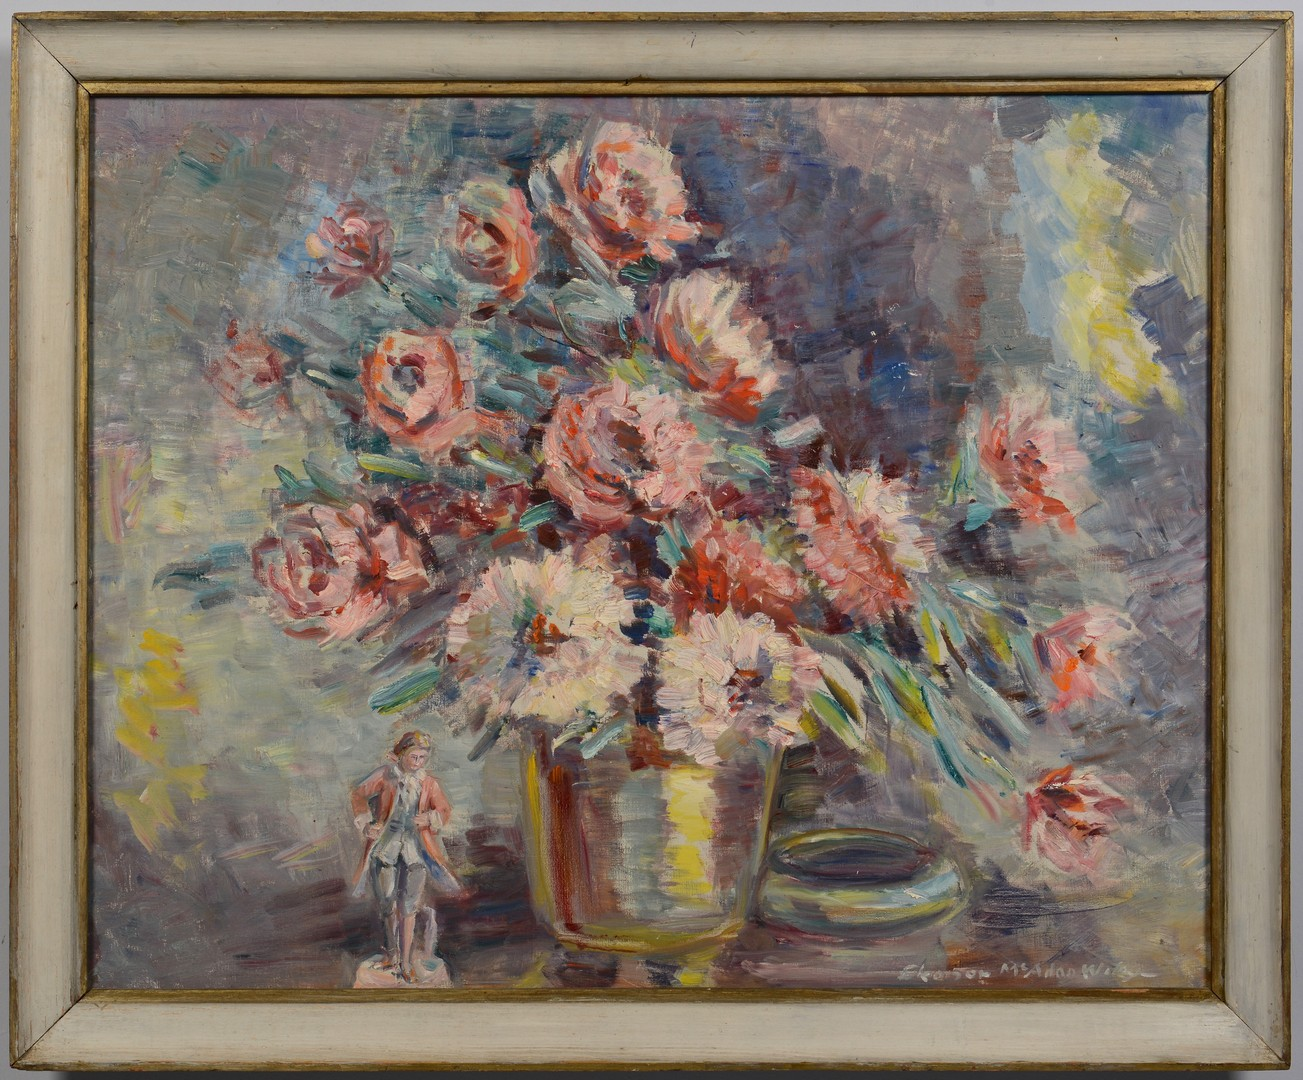 Lot 3832448: Eleanor McAdoo Wiley Still Life Painting